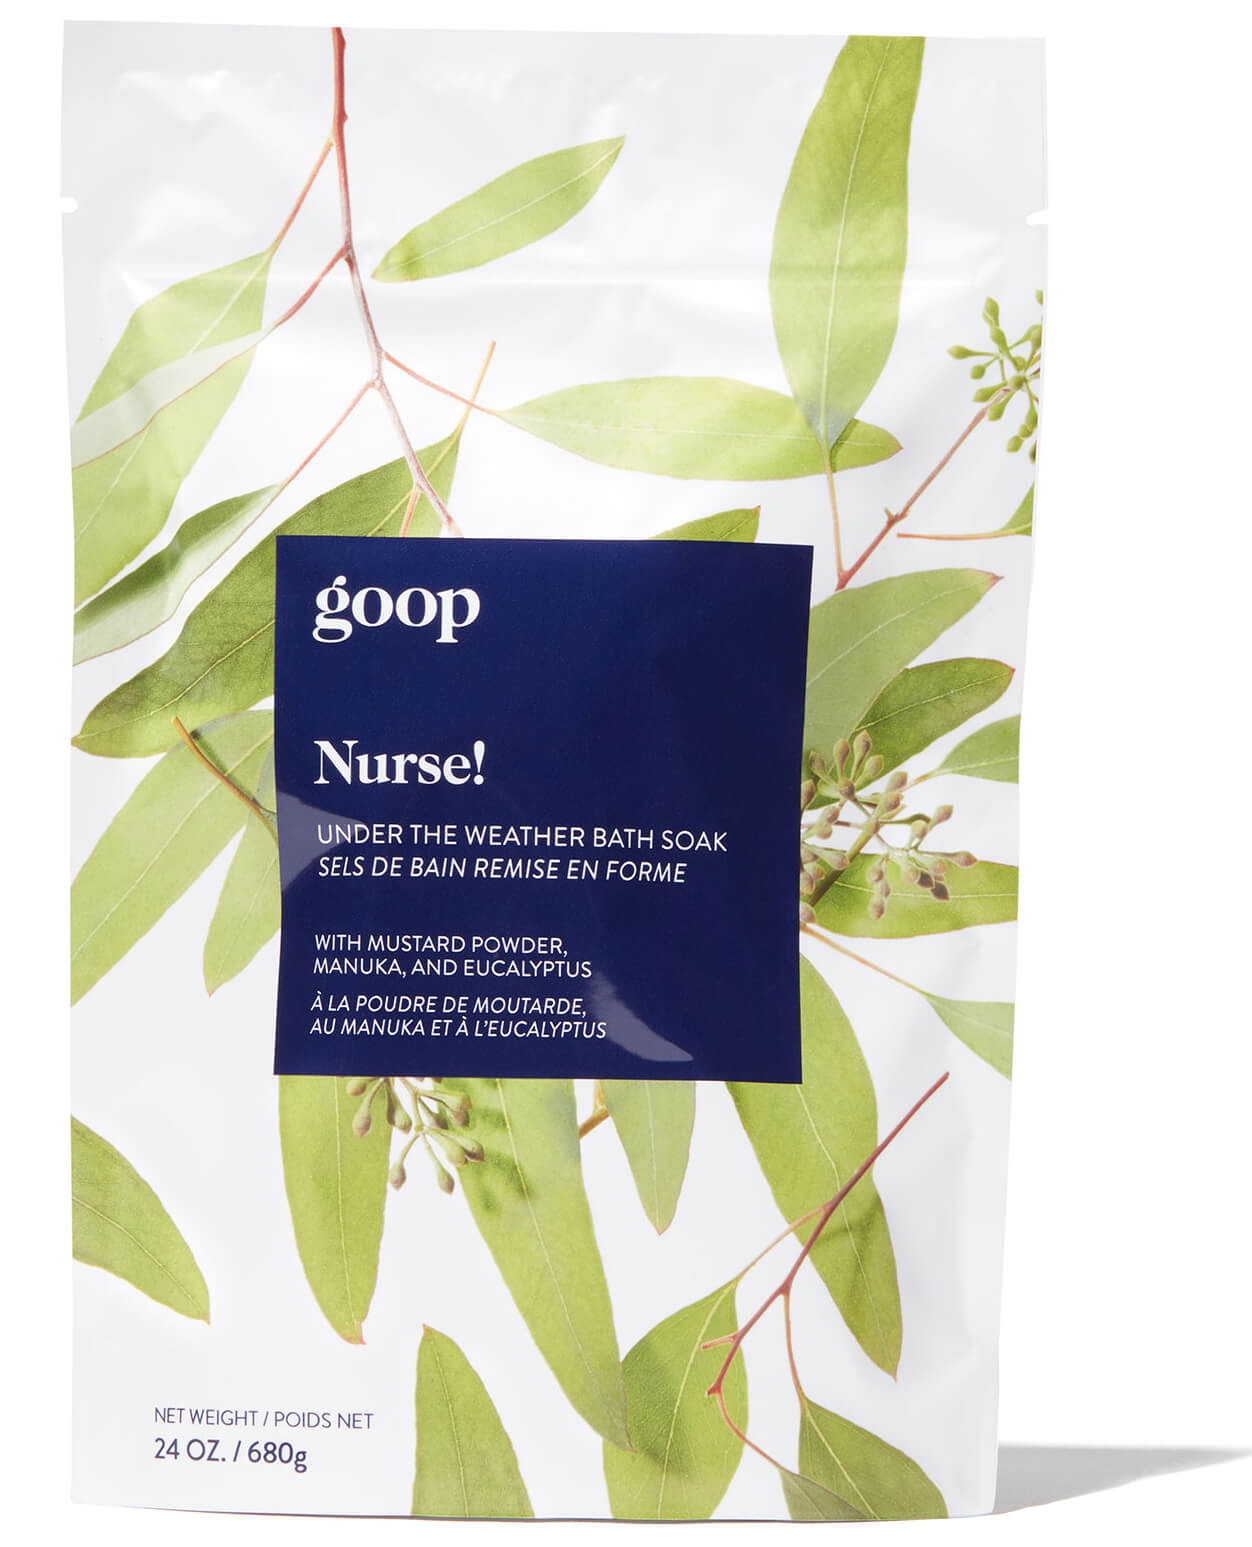 Nurse! Bath Soak